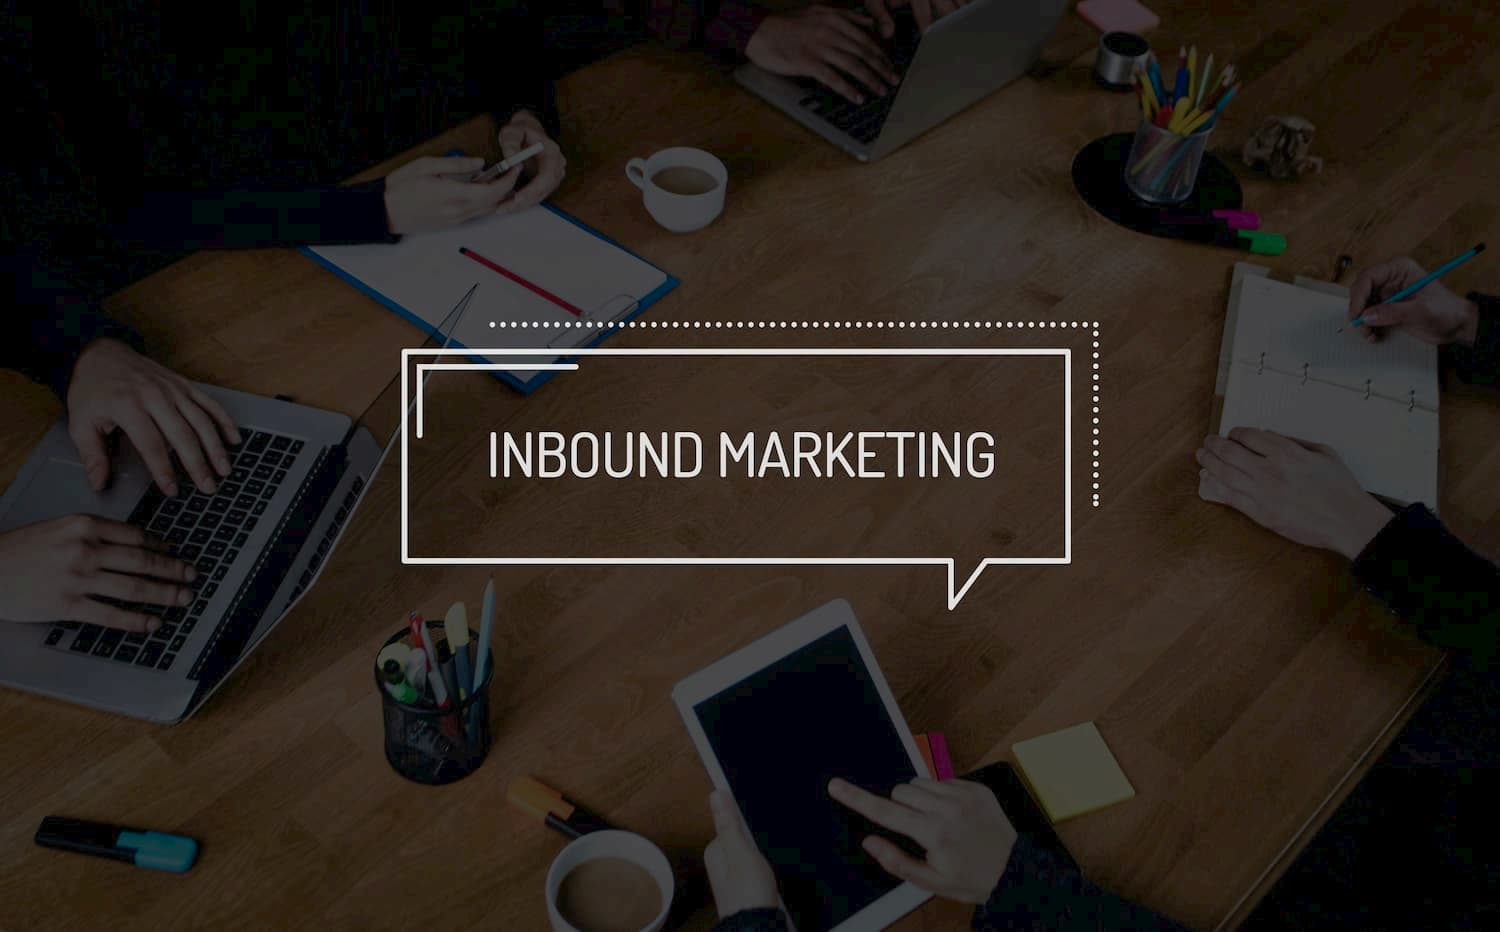 Como utilizar o Inbound Marketing<br>